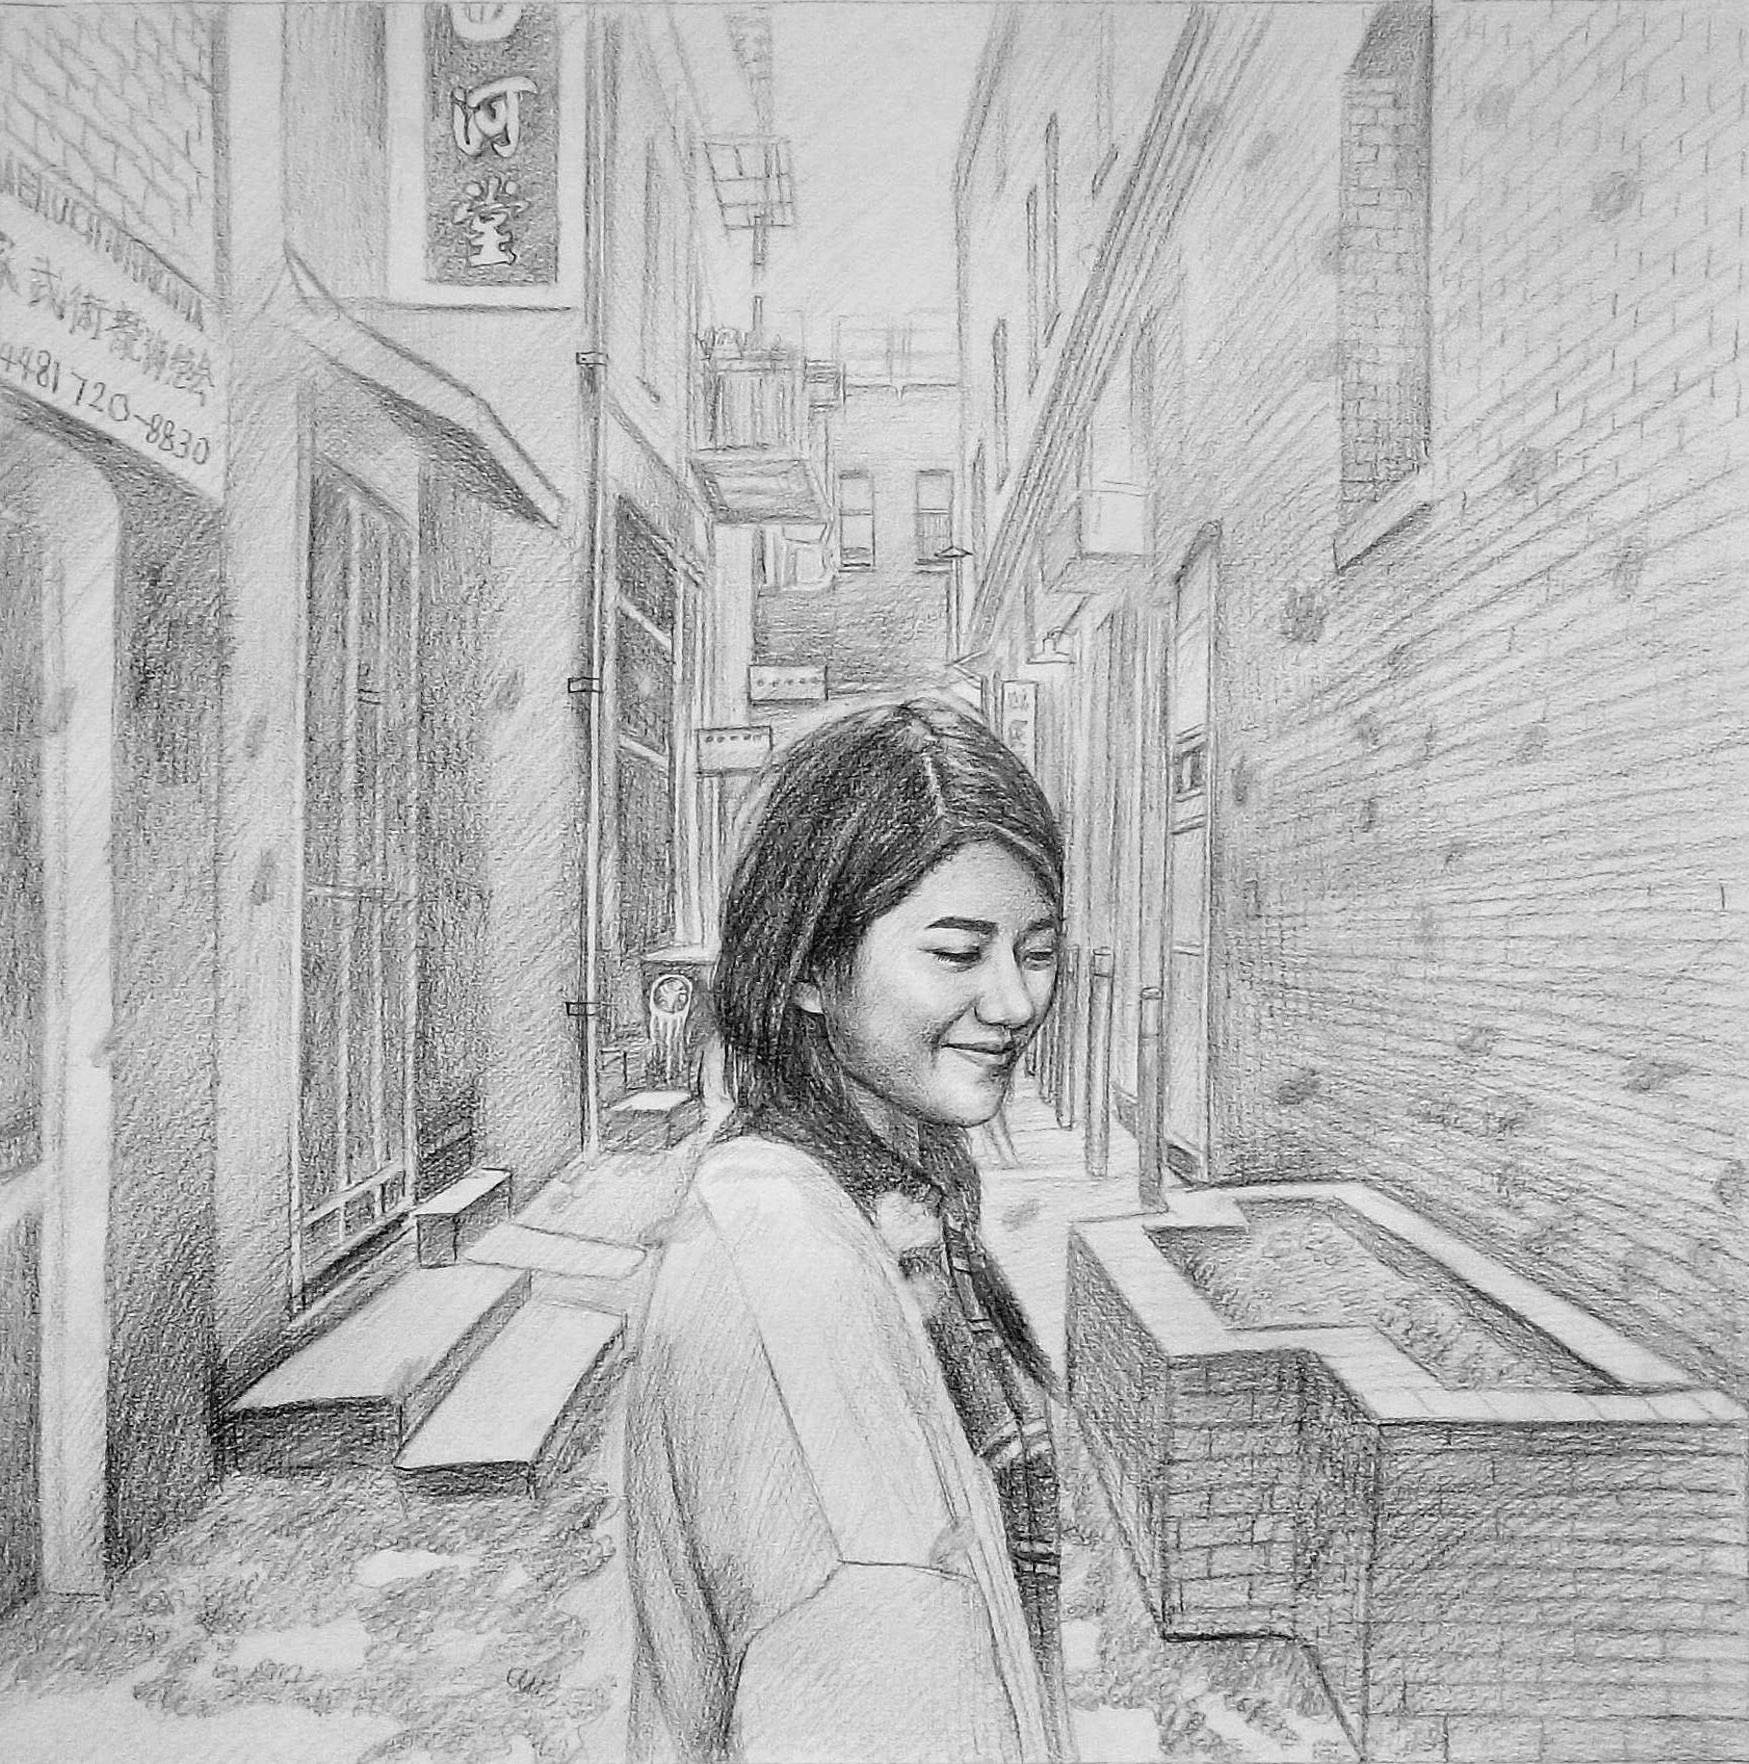 Custom hand drawn girl in chinatown pencil drawing artist rendered painting